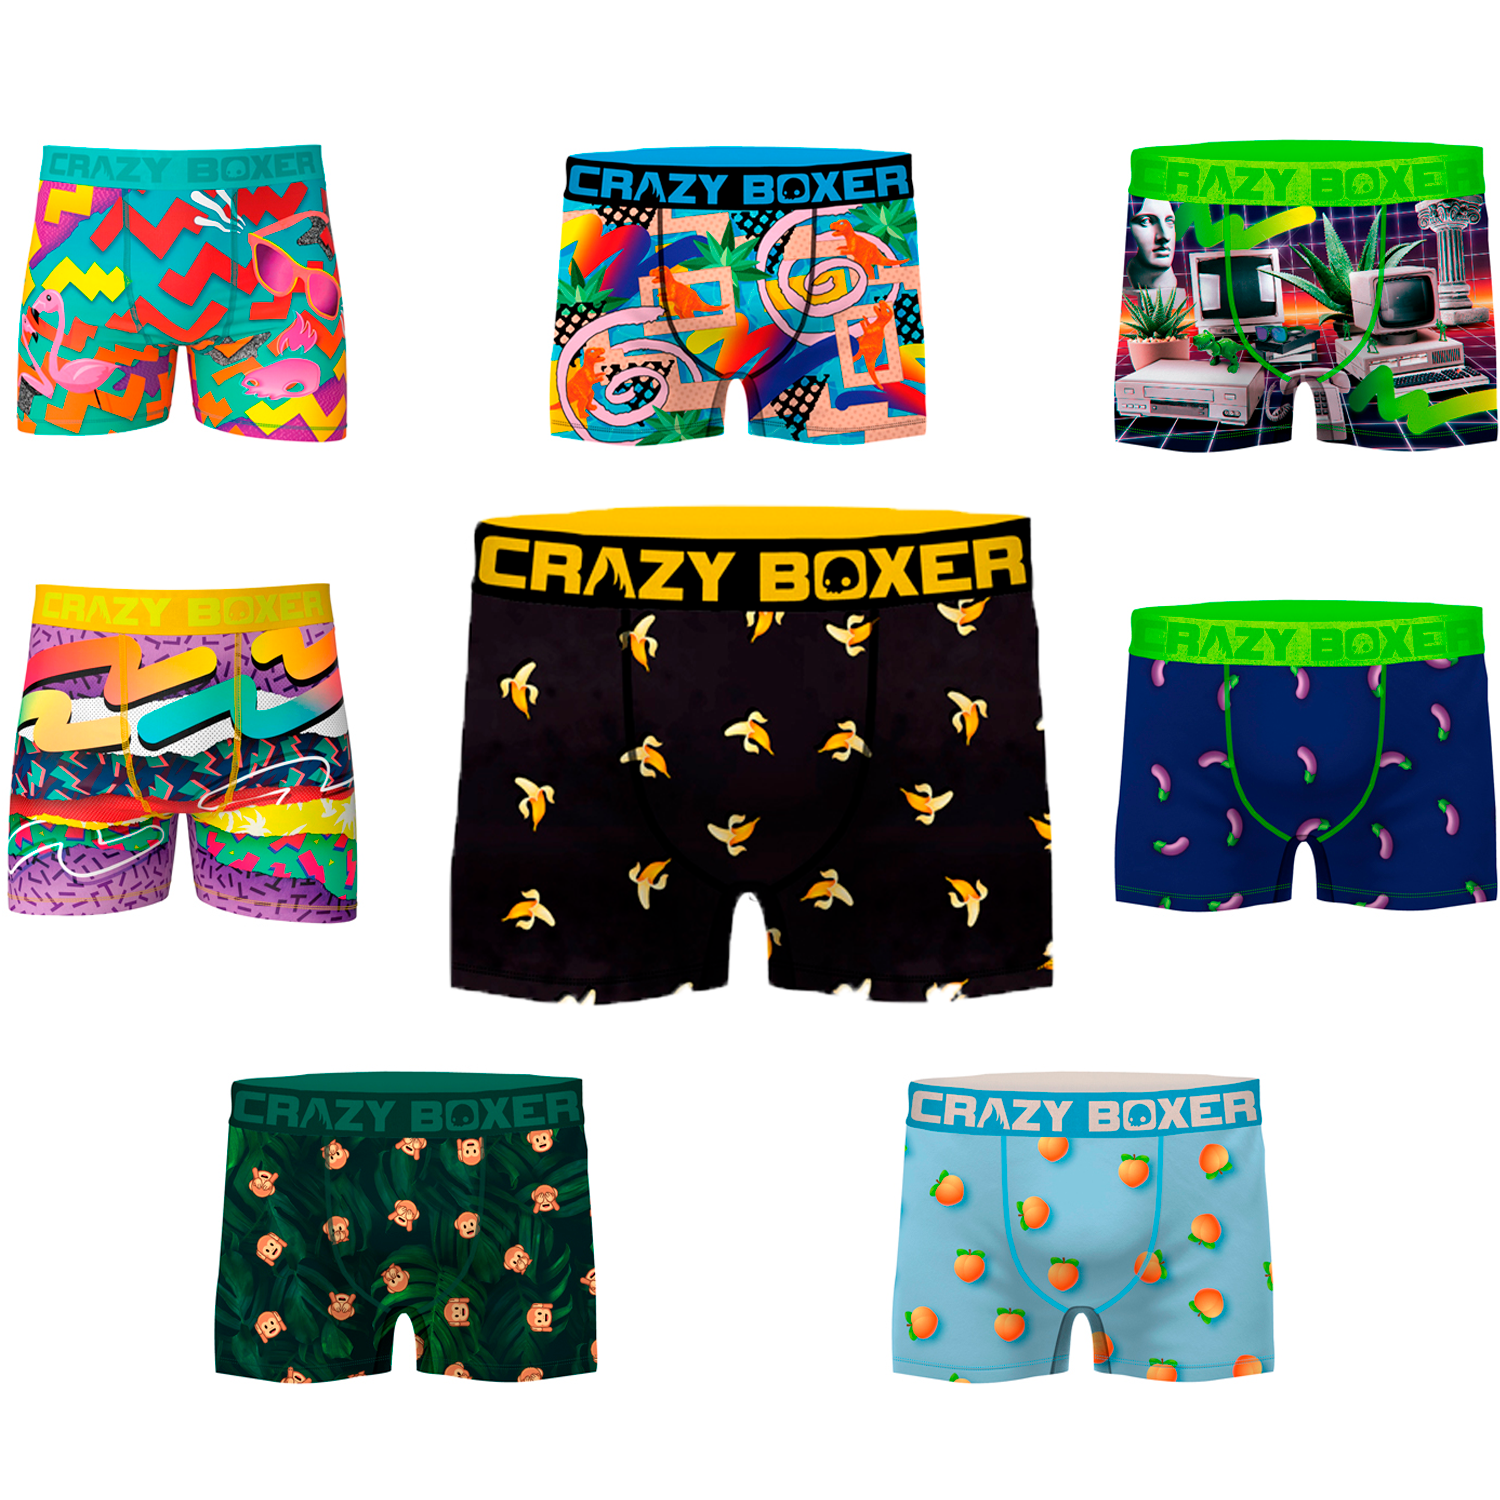 CRAZY BOXER Underwear Boxer Type Stamping 8 Models To Choose